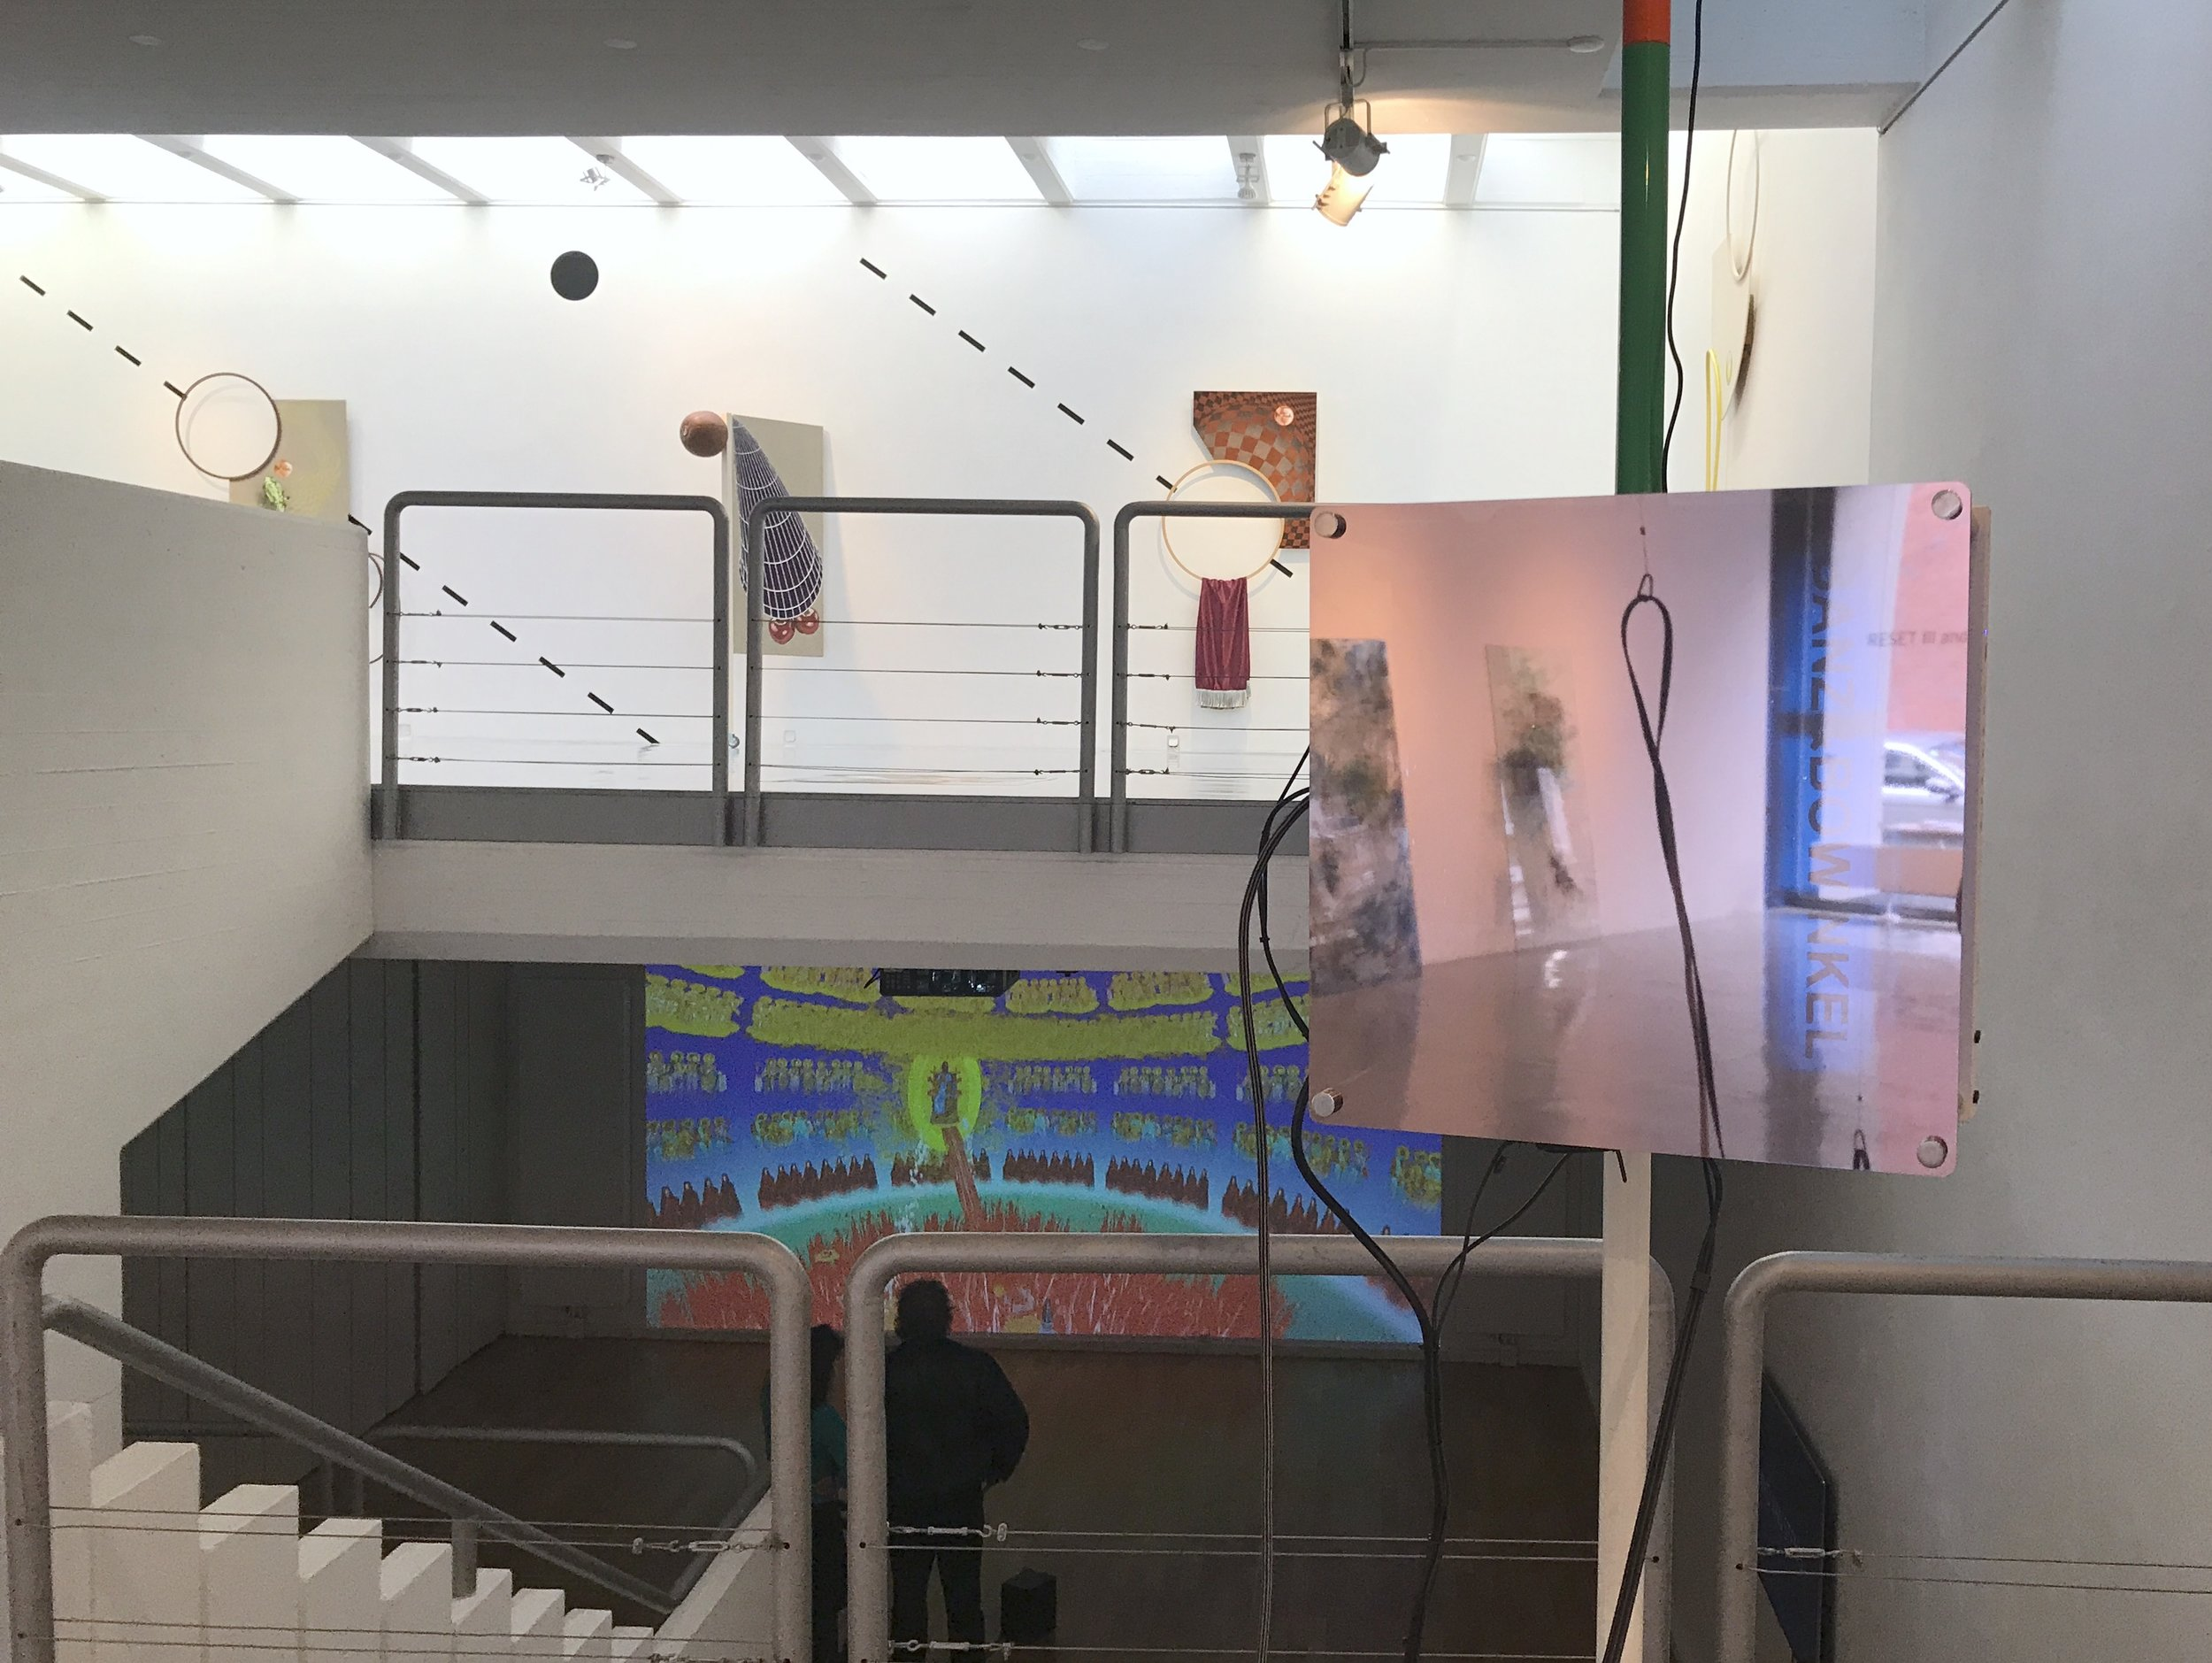 Exhibition view RESET III AND VIRTUAL REALITY